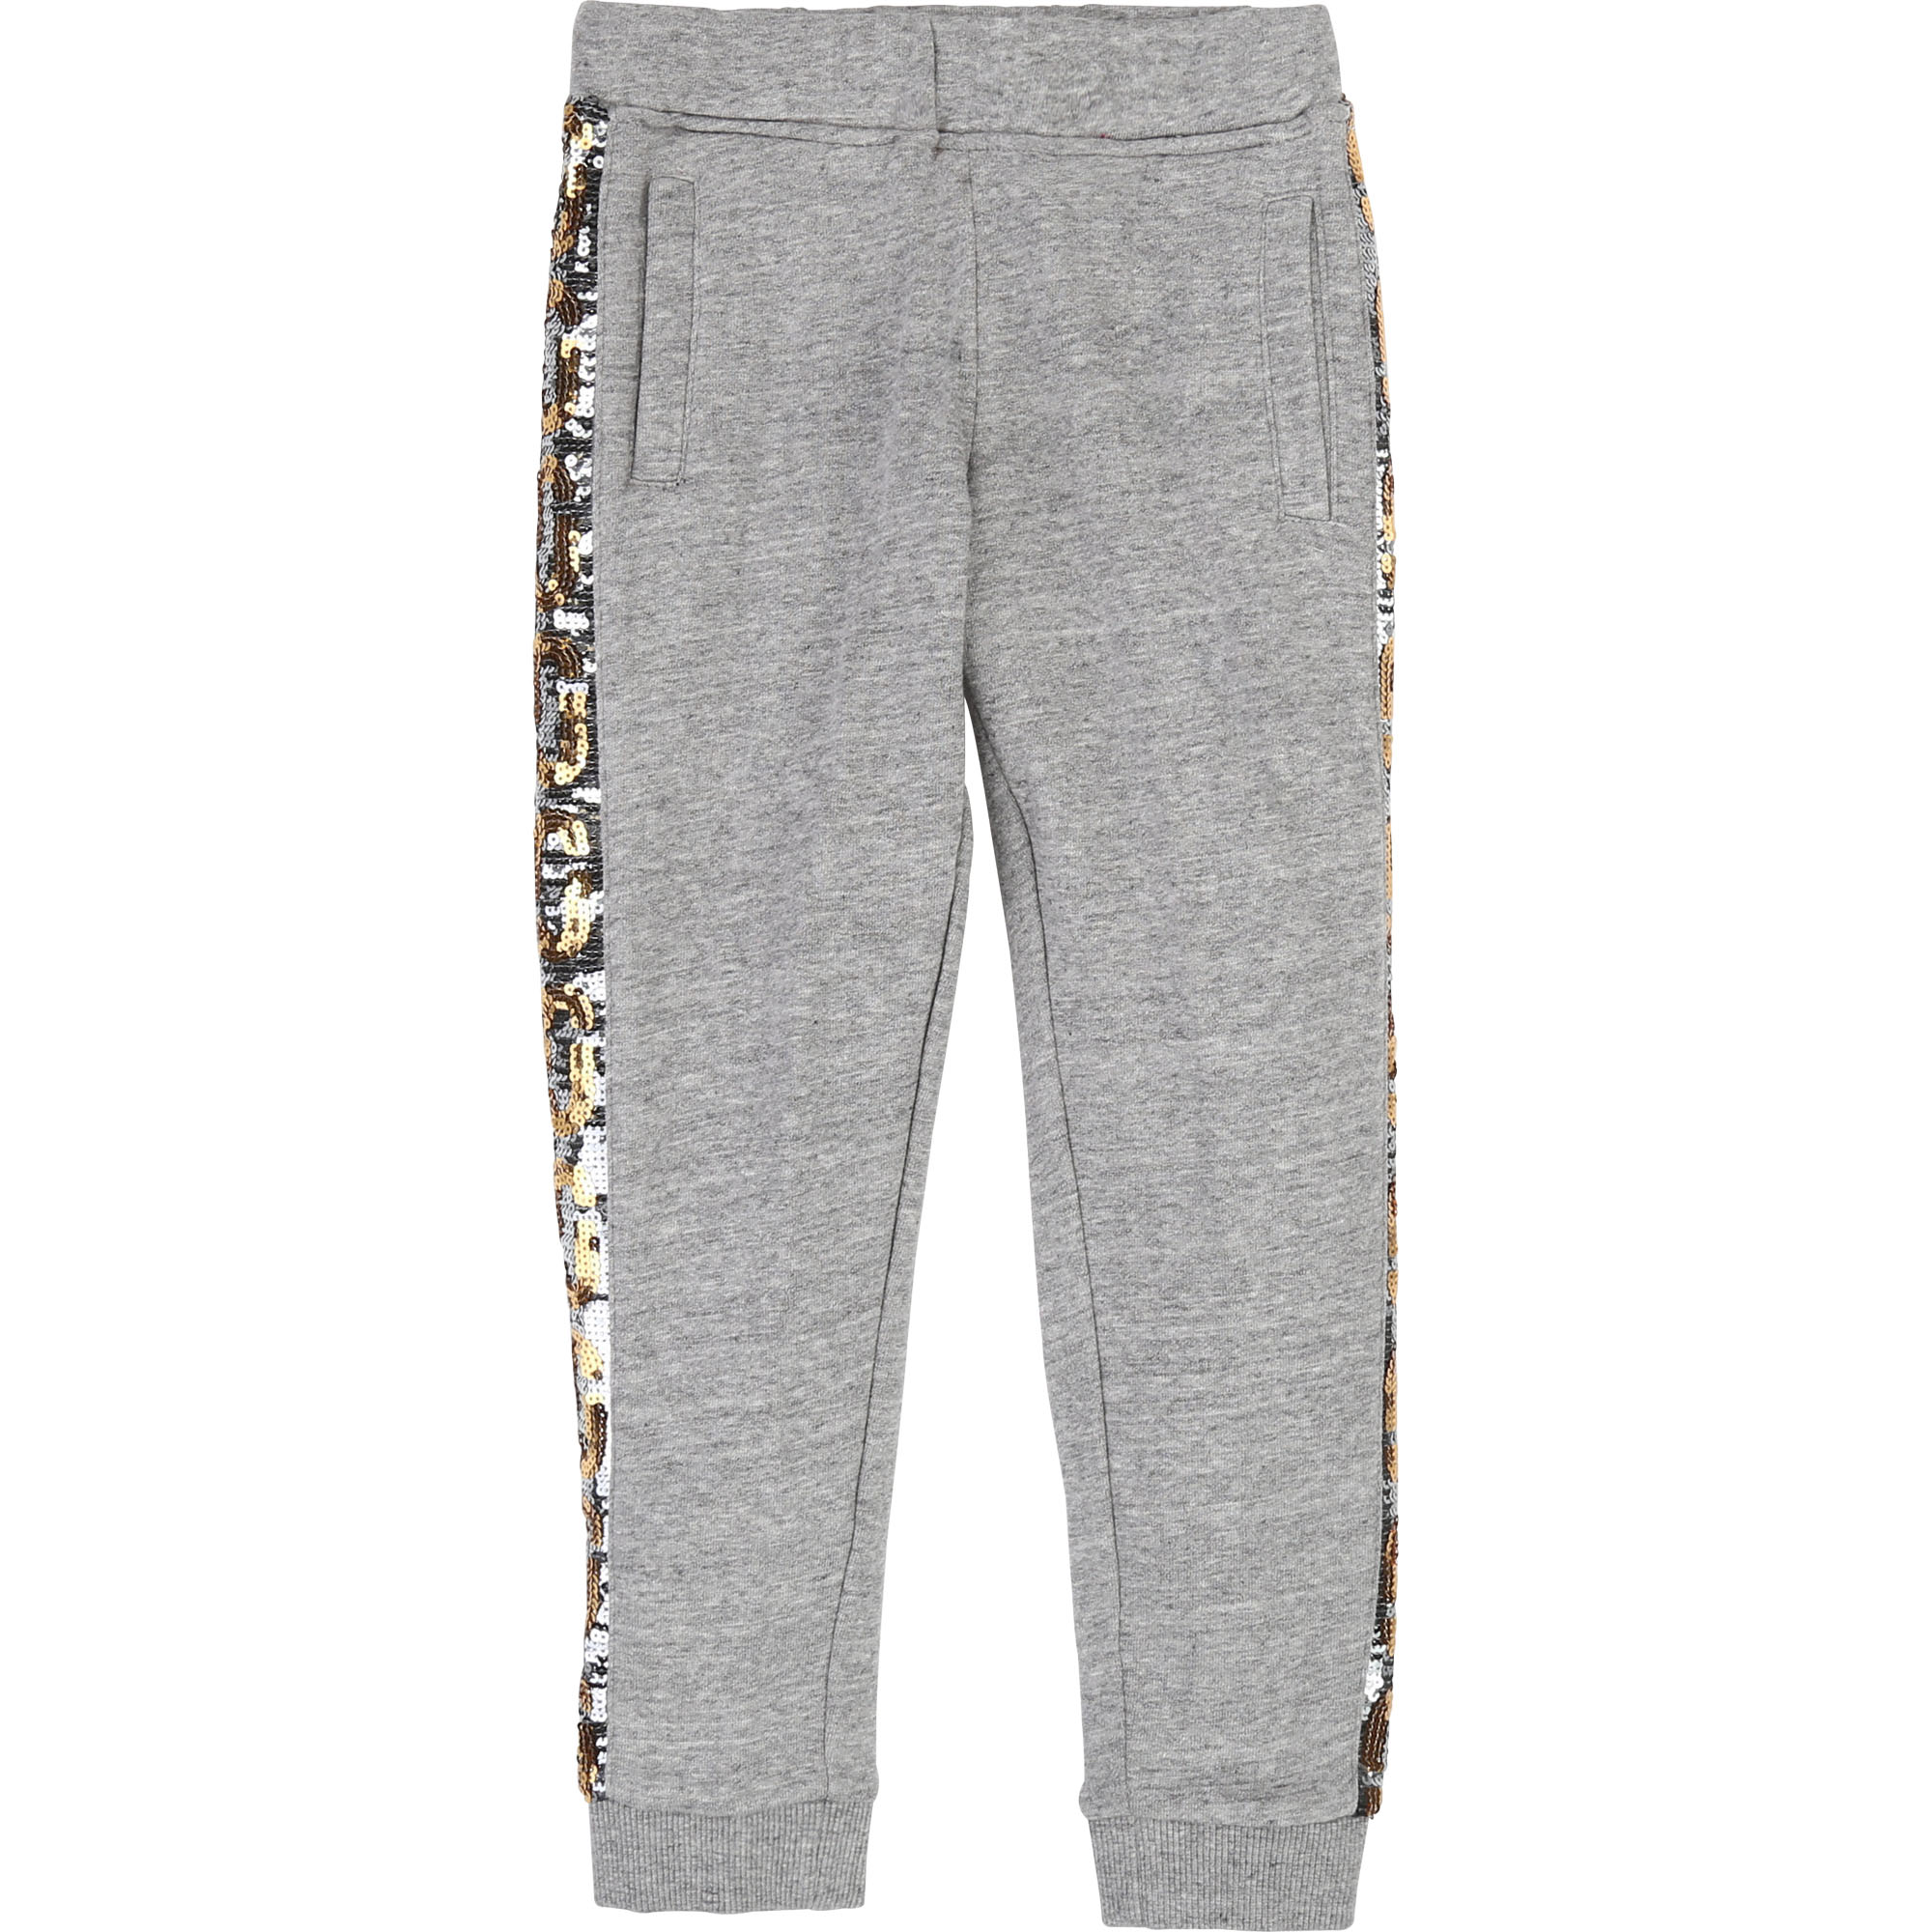 Sweatpants LITTLE MARC JACOBS for GIRL